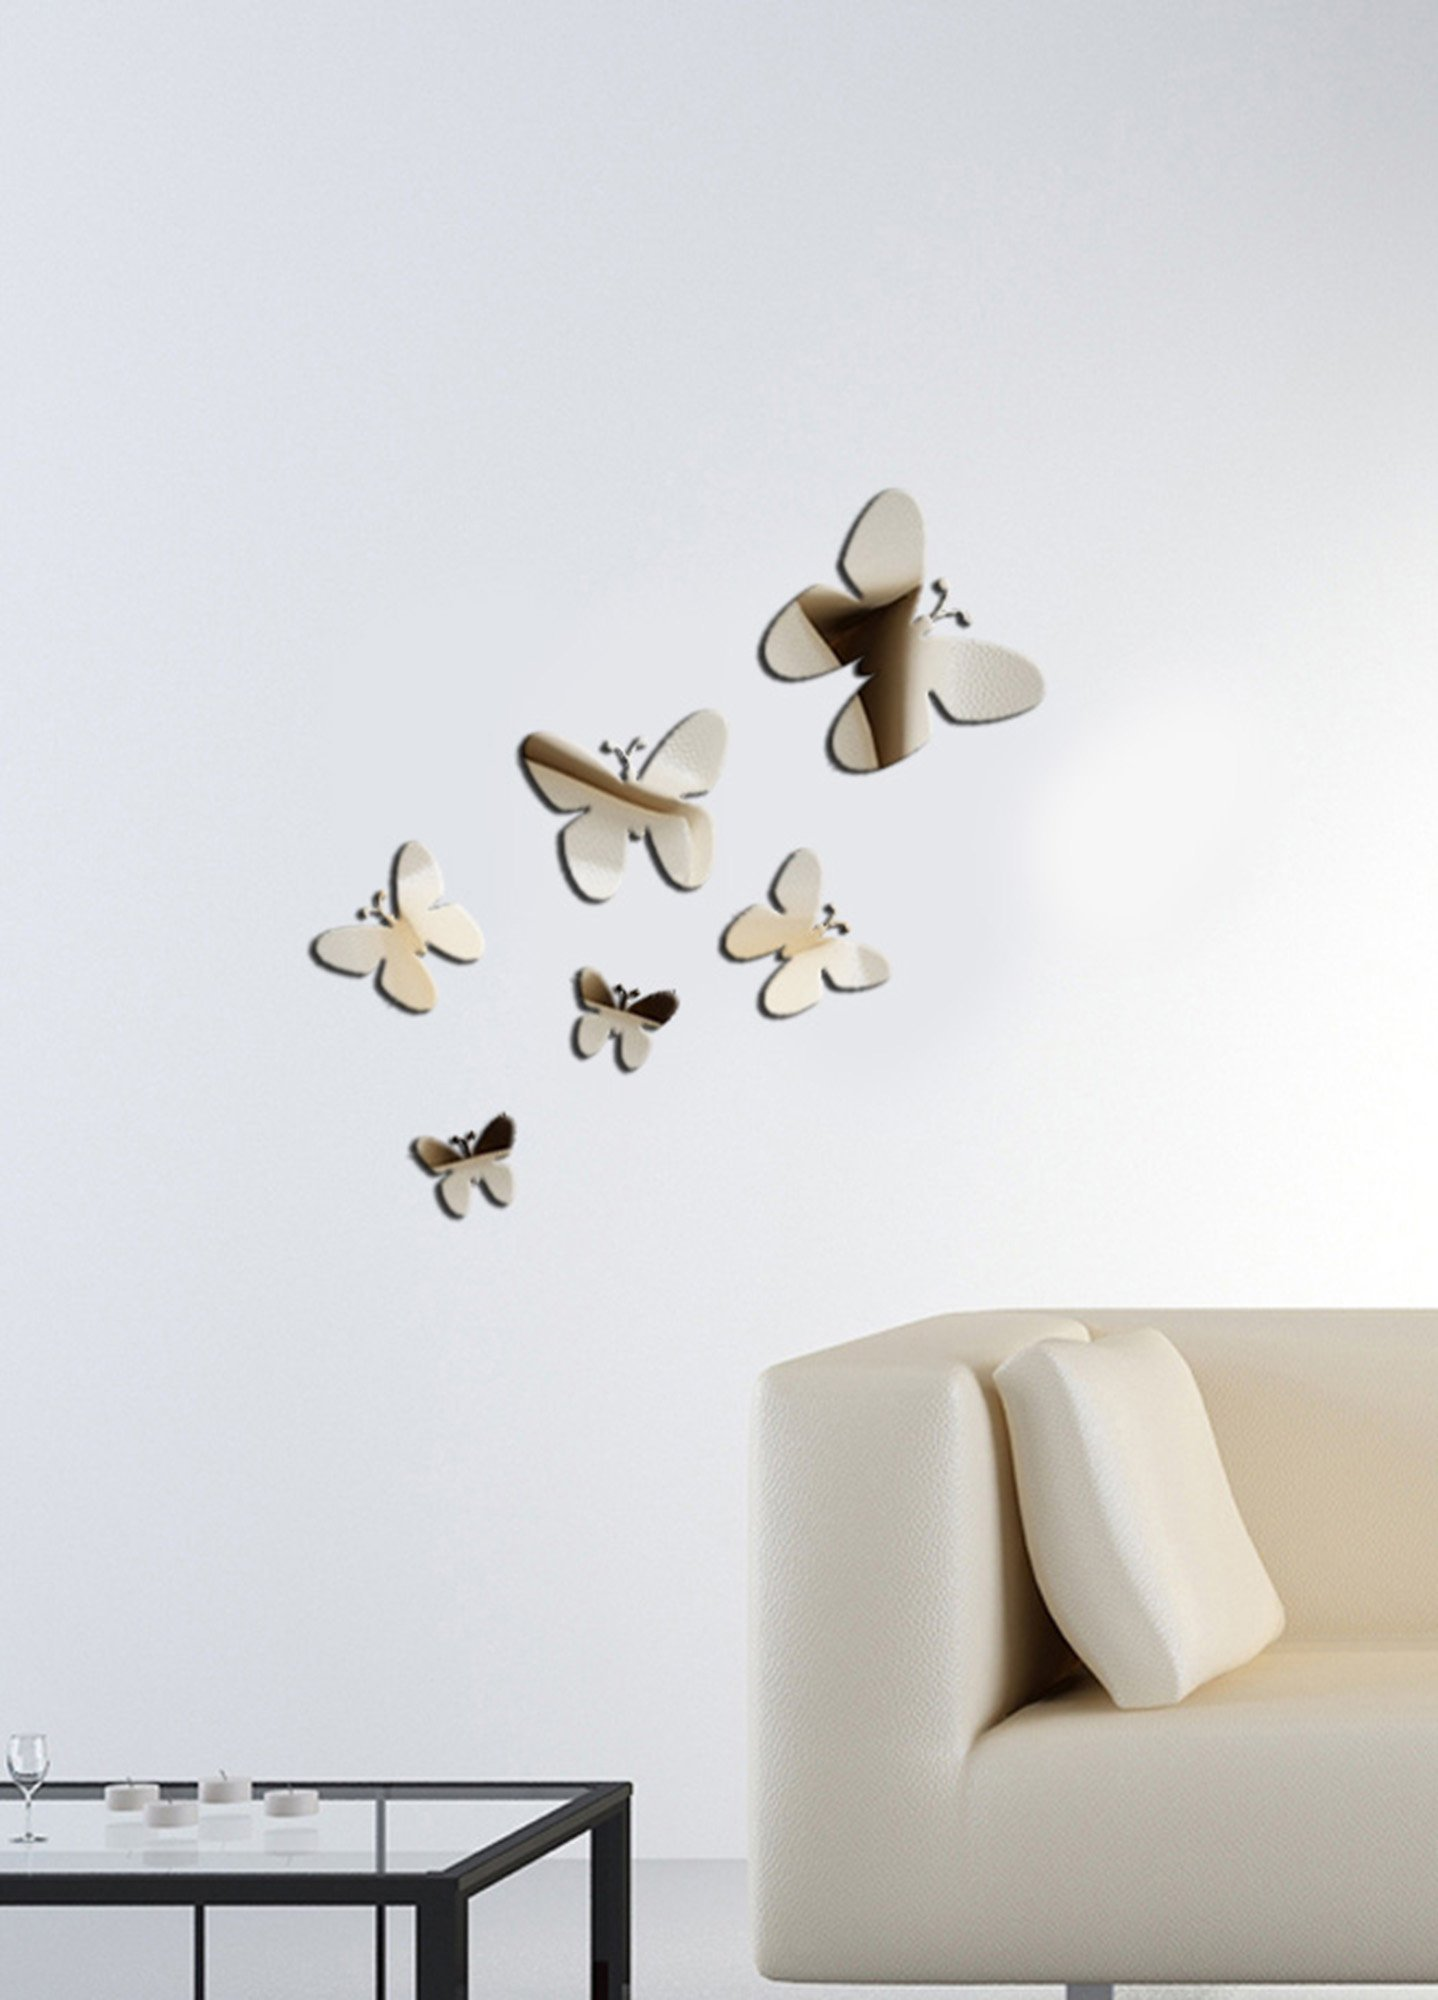 Decorative Removable Wall Sticker Mirror PLEXIGLASS (23.6'' x 23.6'') Number of Pieces 6 / Design Geometric Modern Pattern Butterfly Animal Cute / Background Decoration Perfect Design For Home, Office,